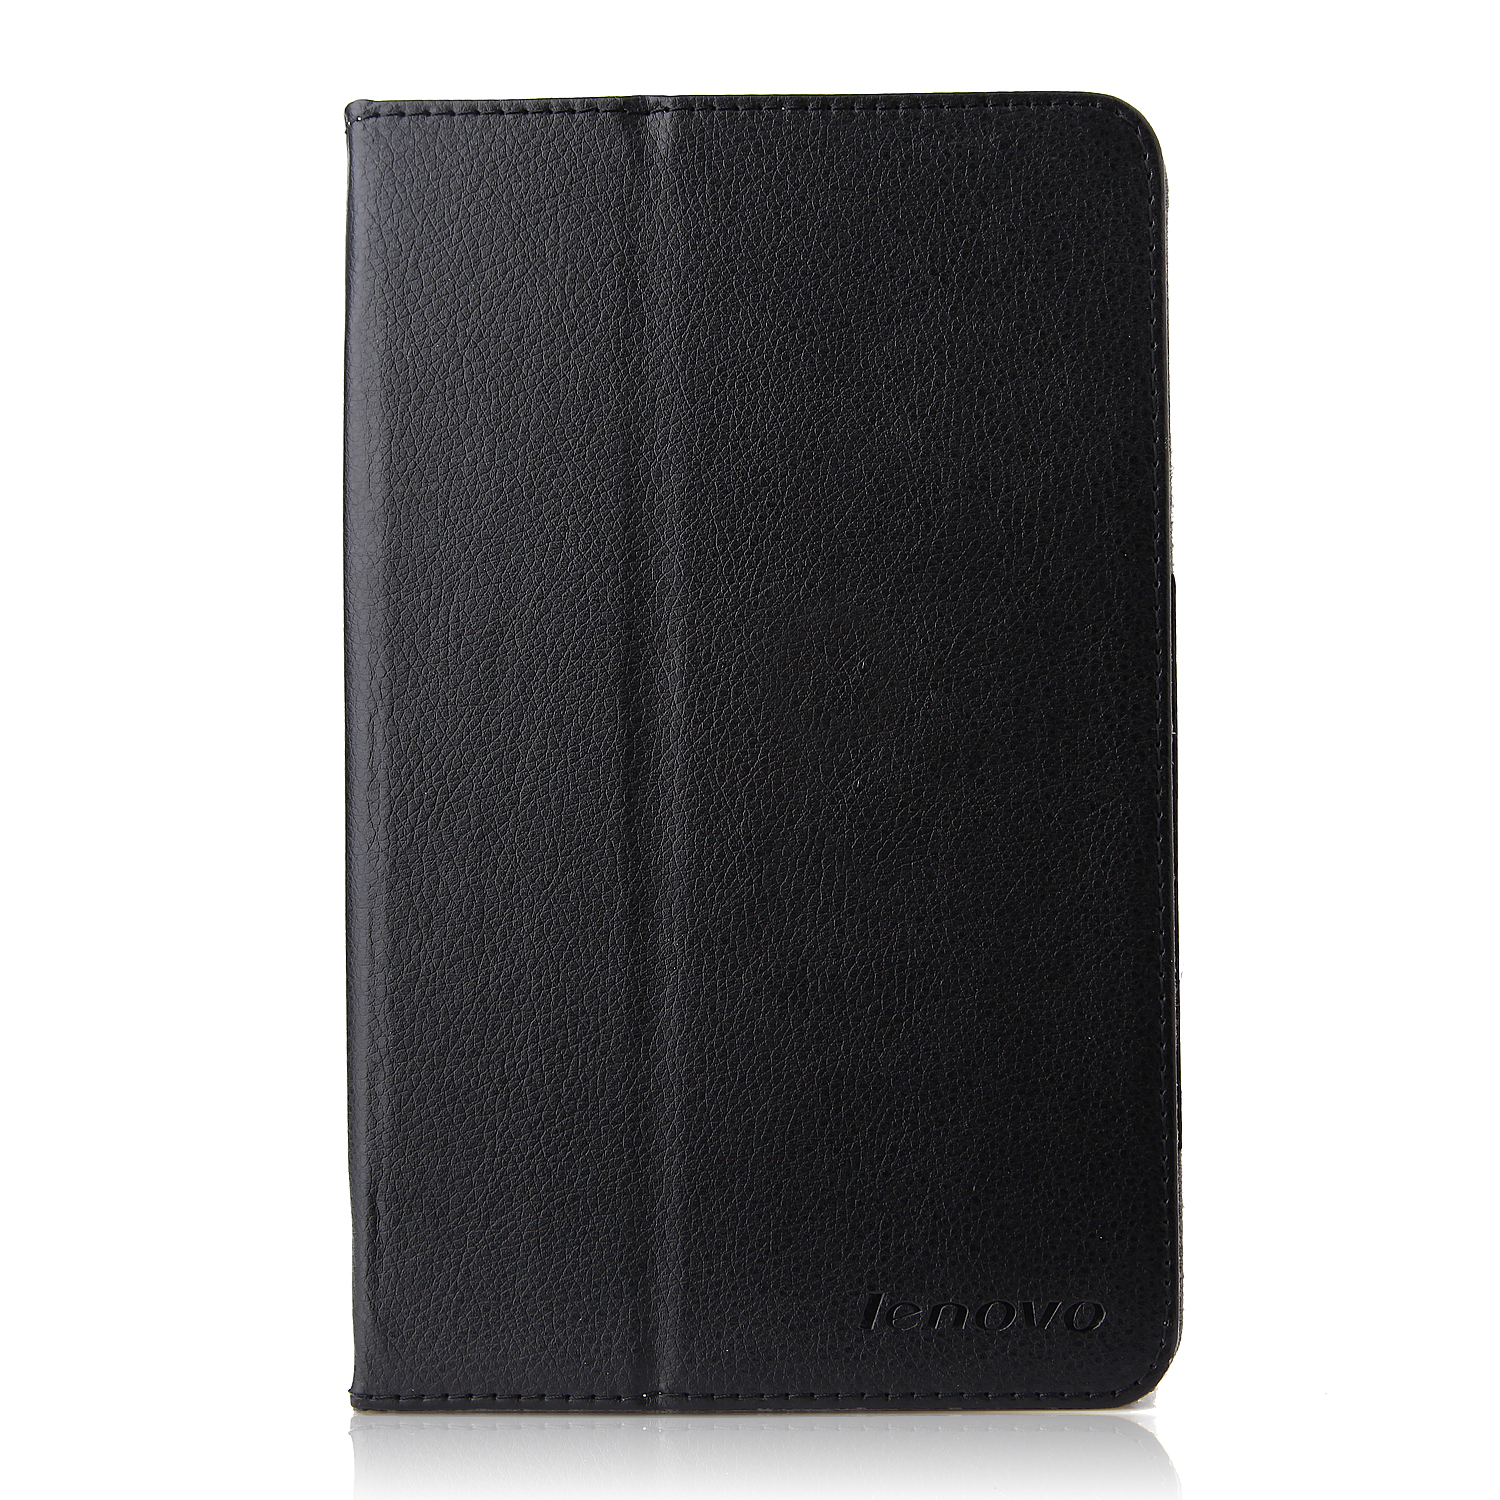 Protective PU Leather Stand Case Cover for Lenovo A5500 Tablet PC Black